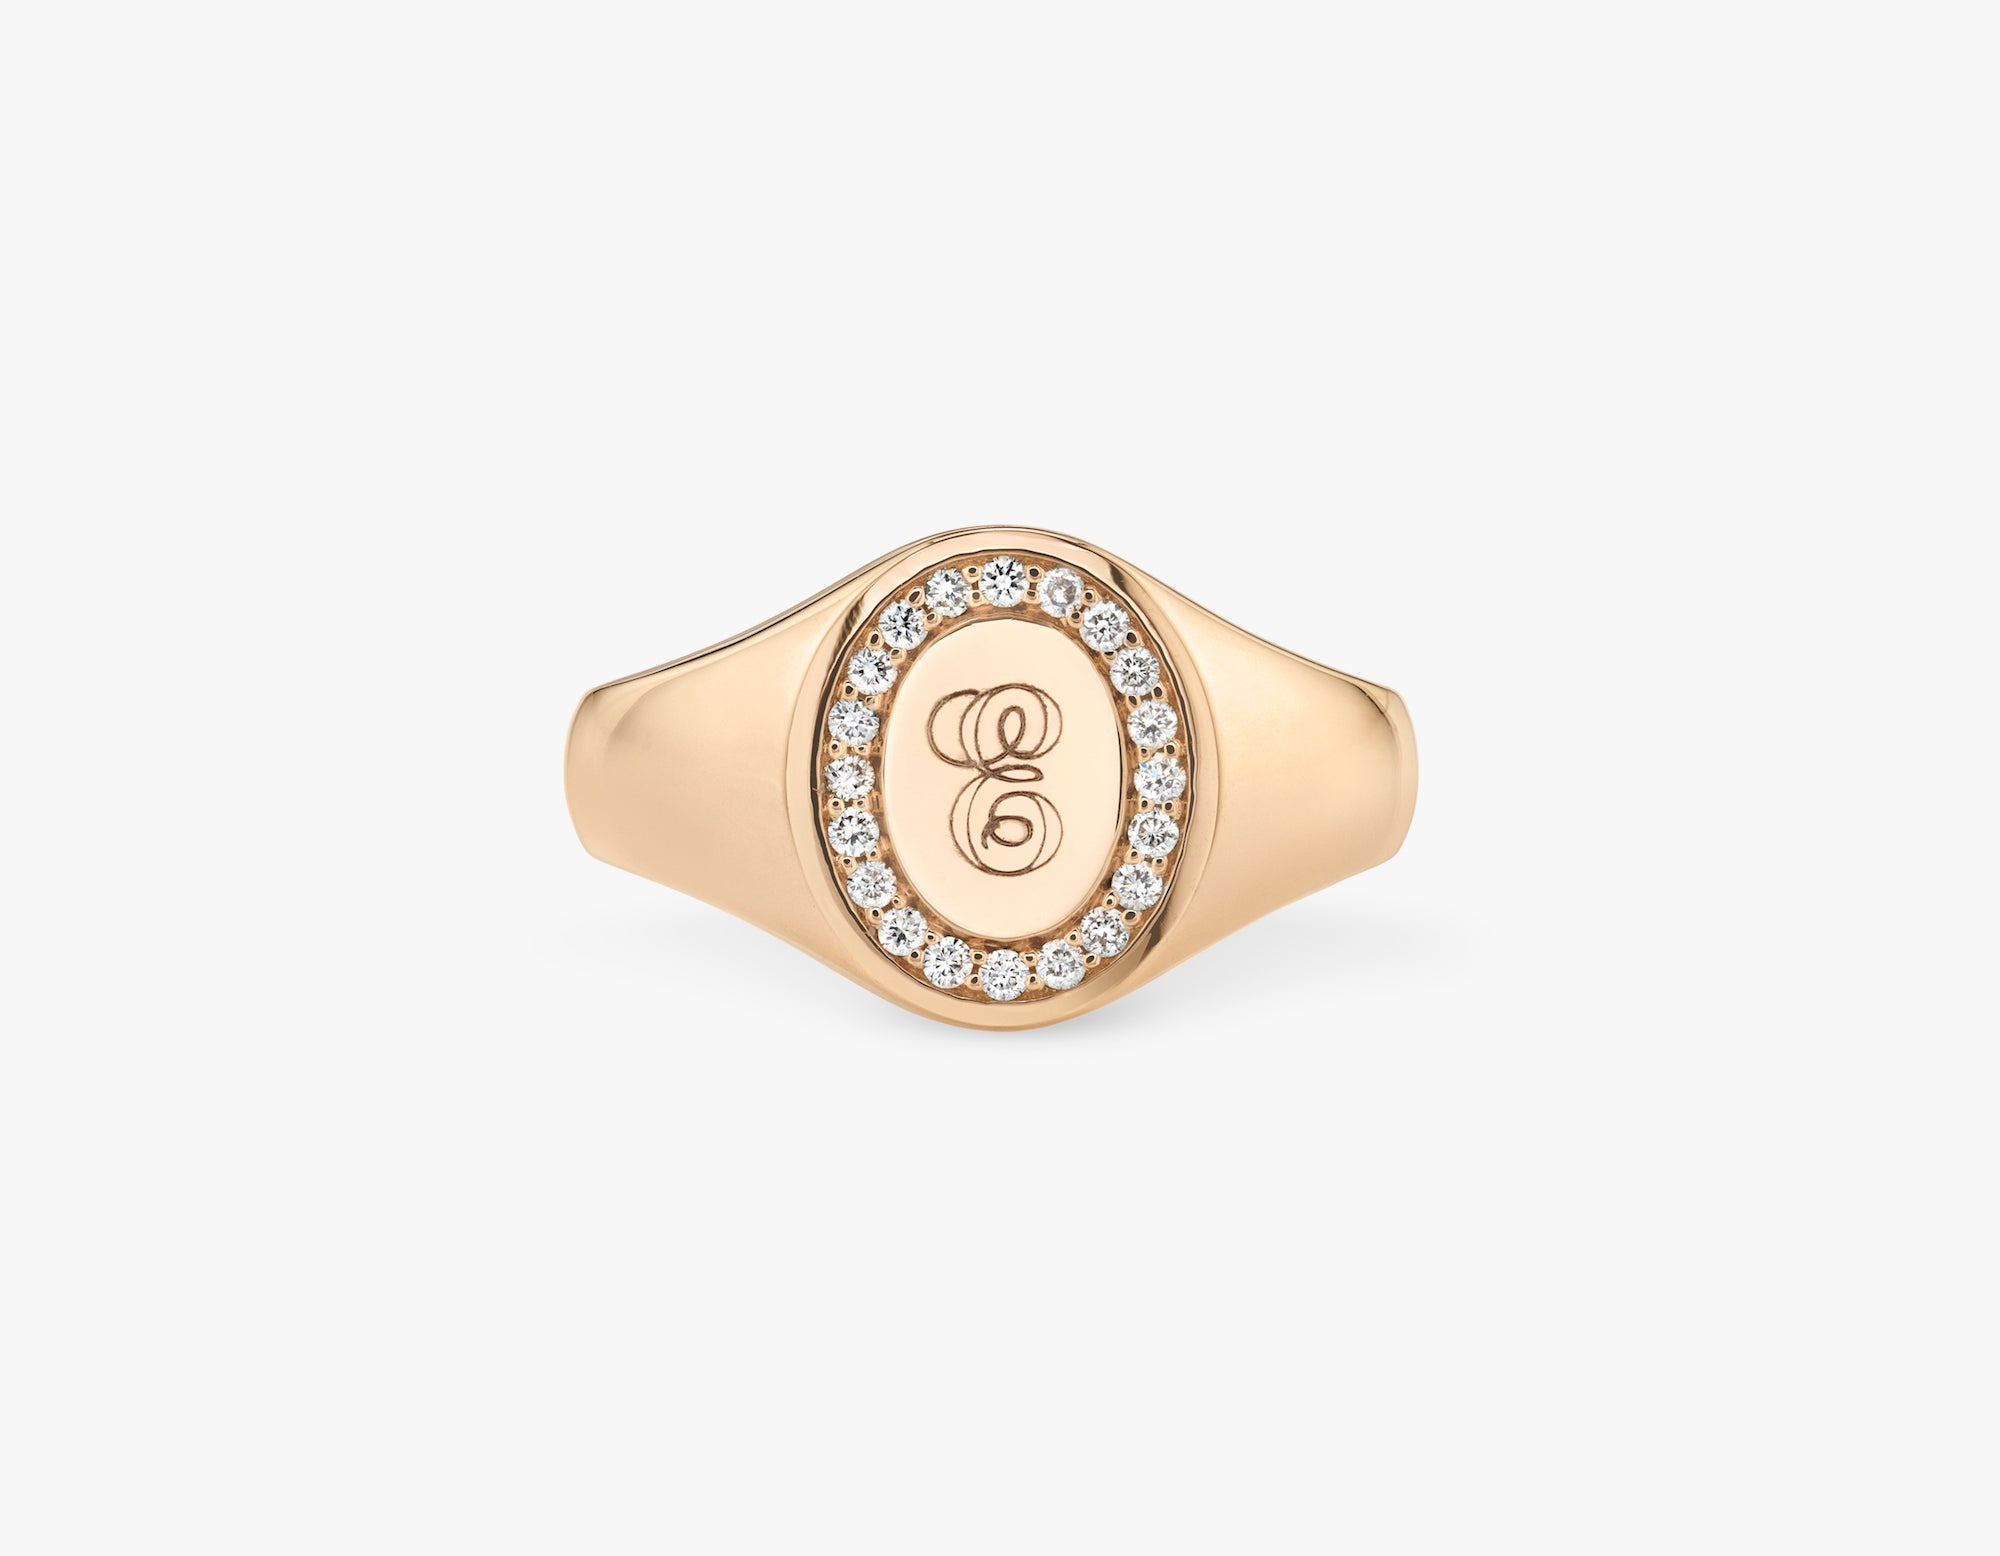 Vrai 14k solid gold classic customizable engraved Signet Ring, 14K Rose Gold